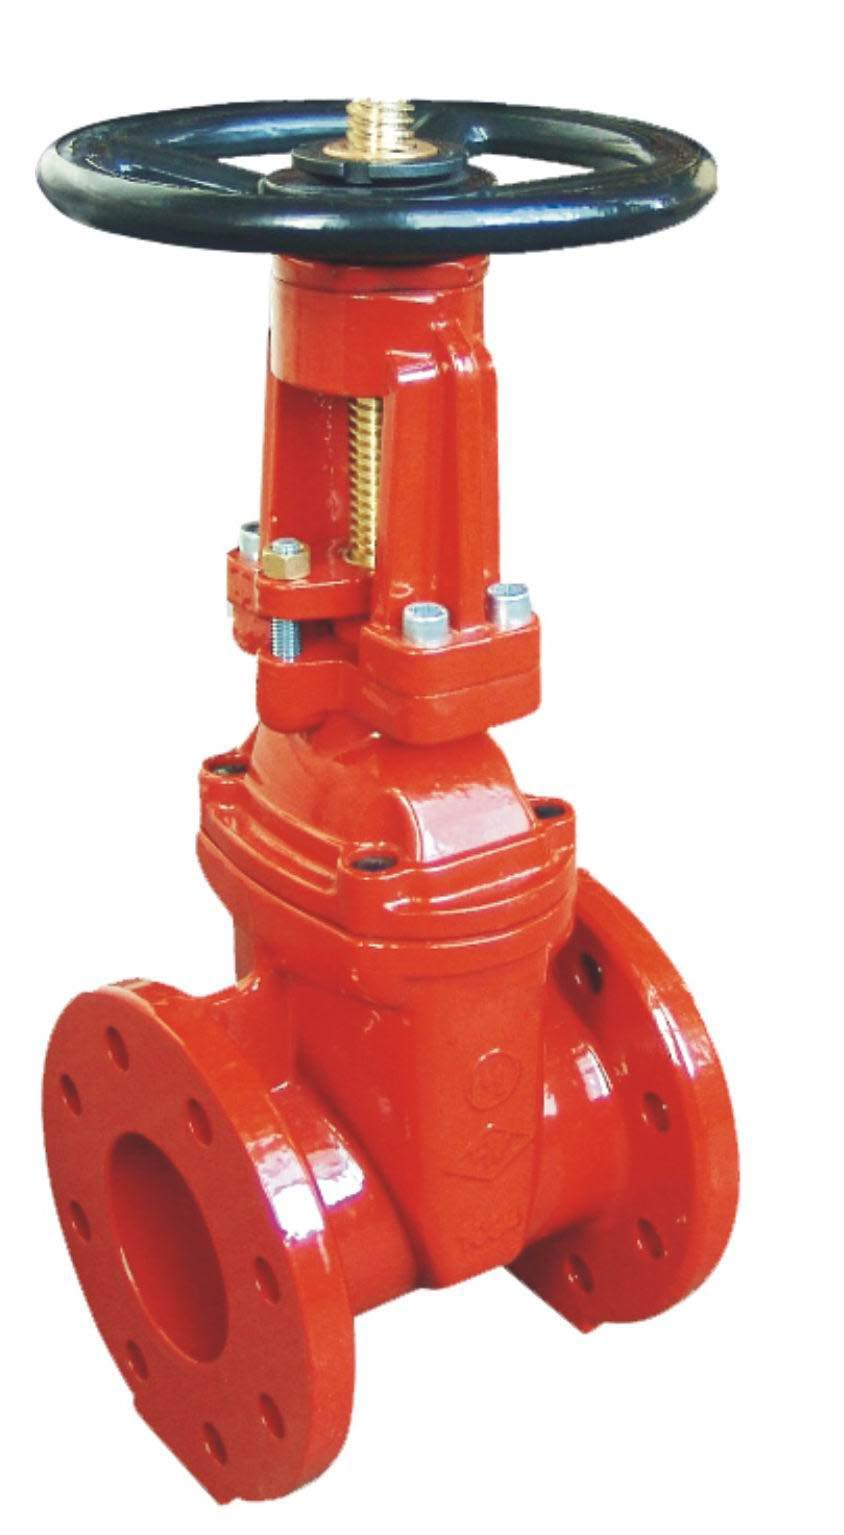 Flanged Ends OSY Resilient Seated Gate Valves-AWWA C509-UL FM Approval